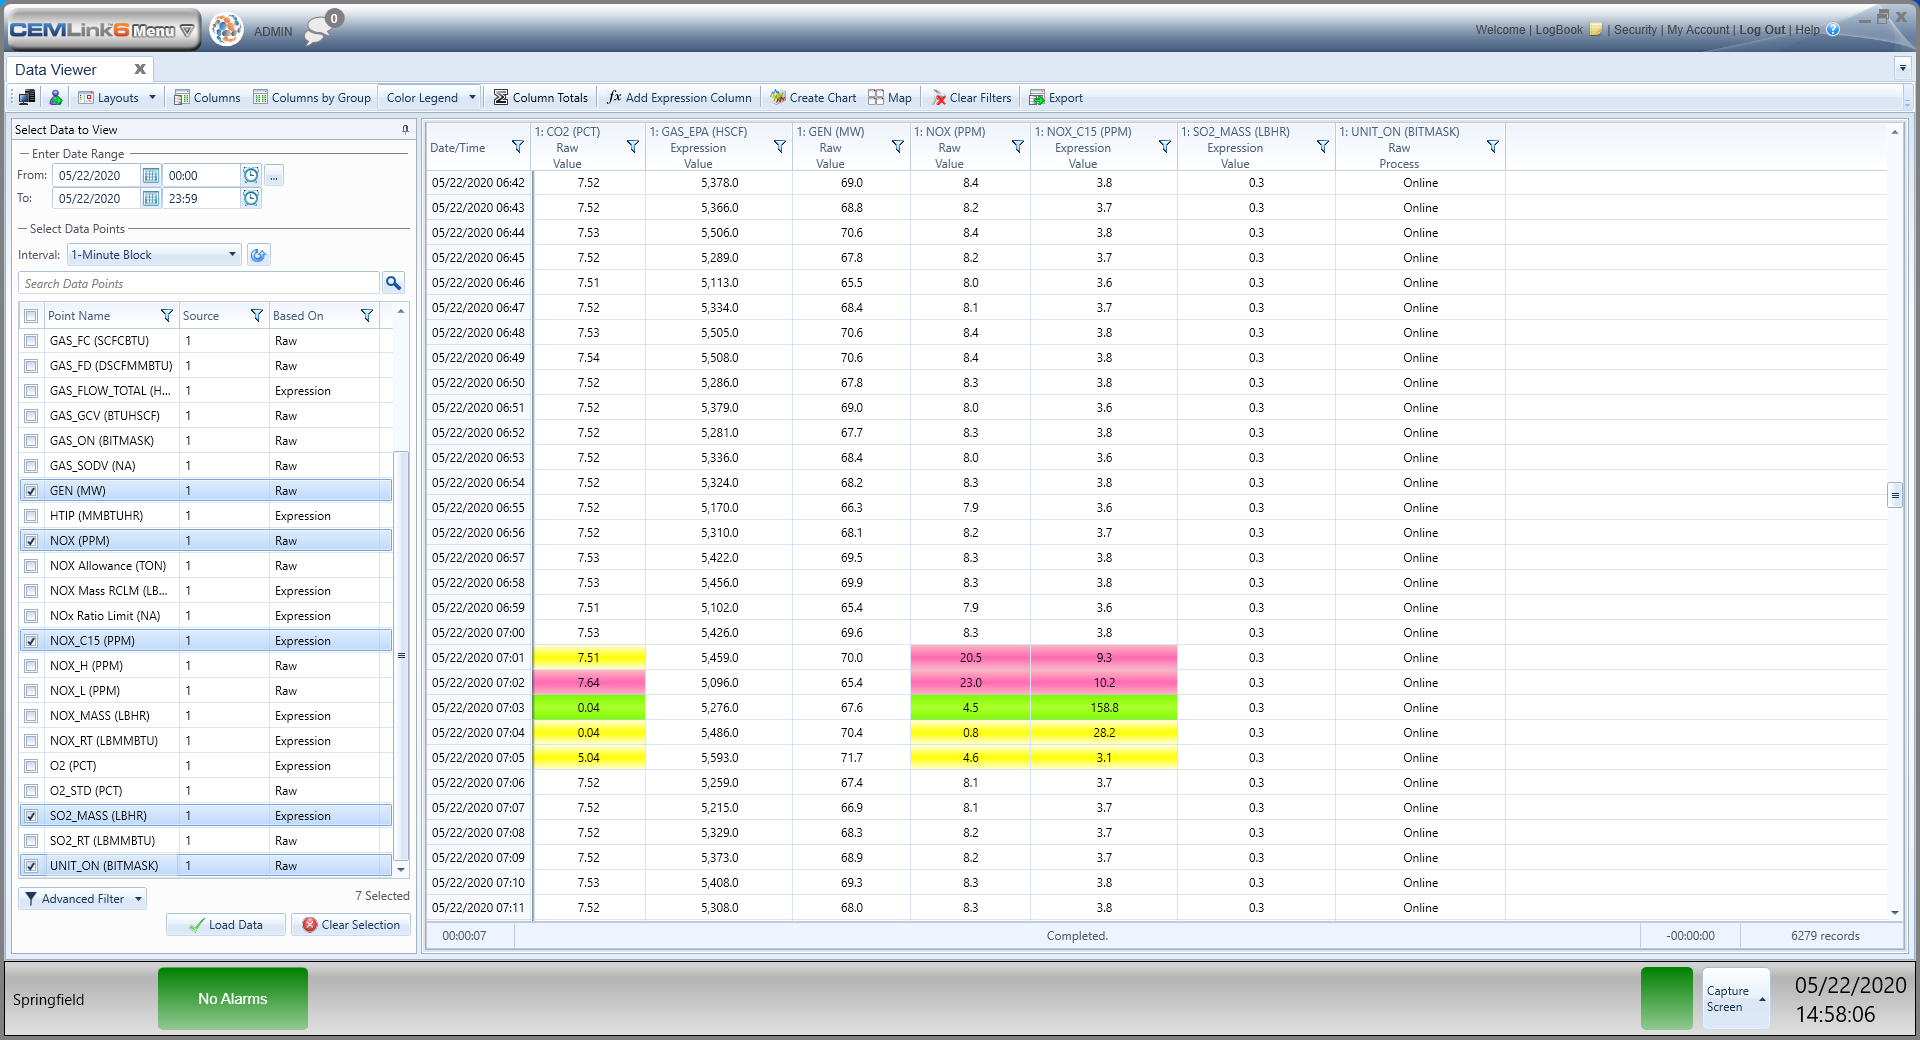 CEMLink 6 Data Viewer screenshot